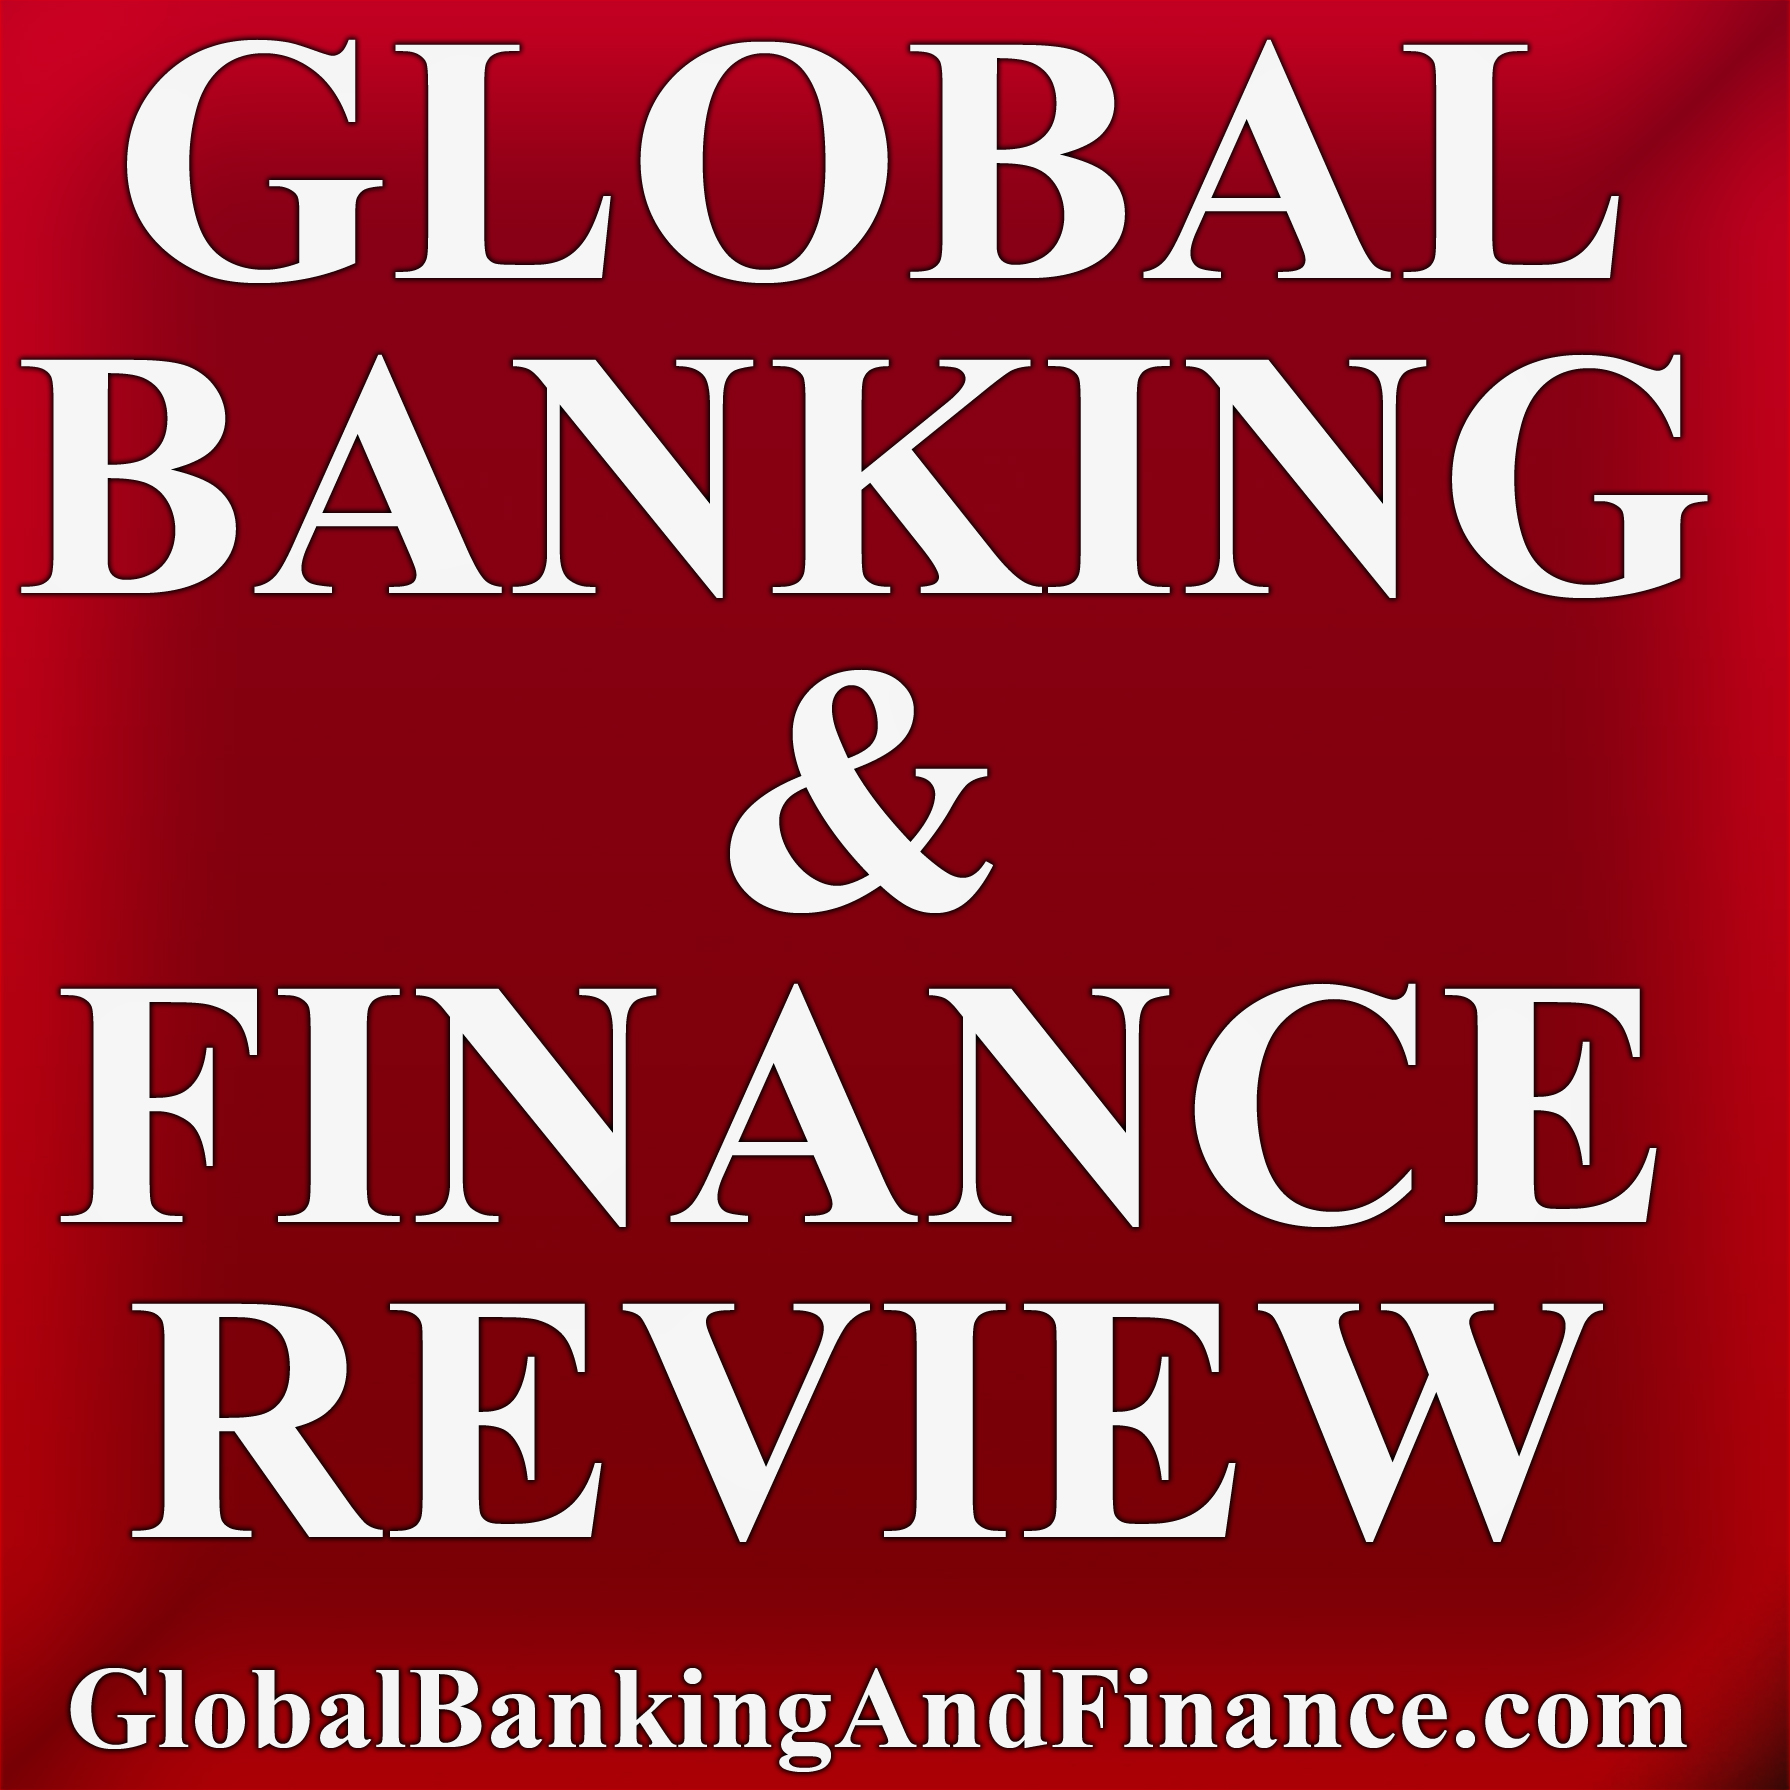 Global Banking & Finance Review